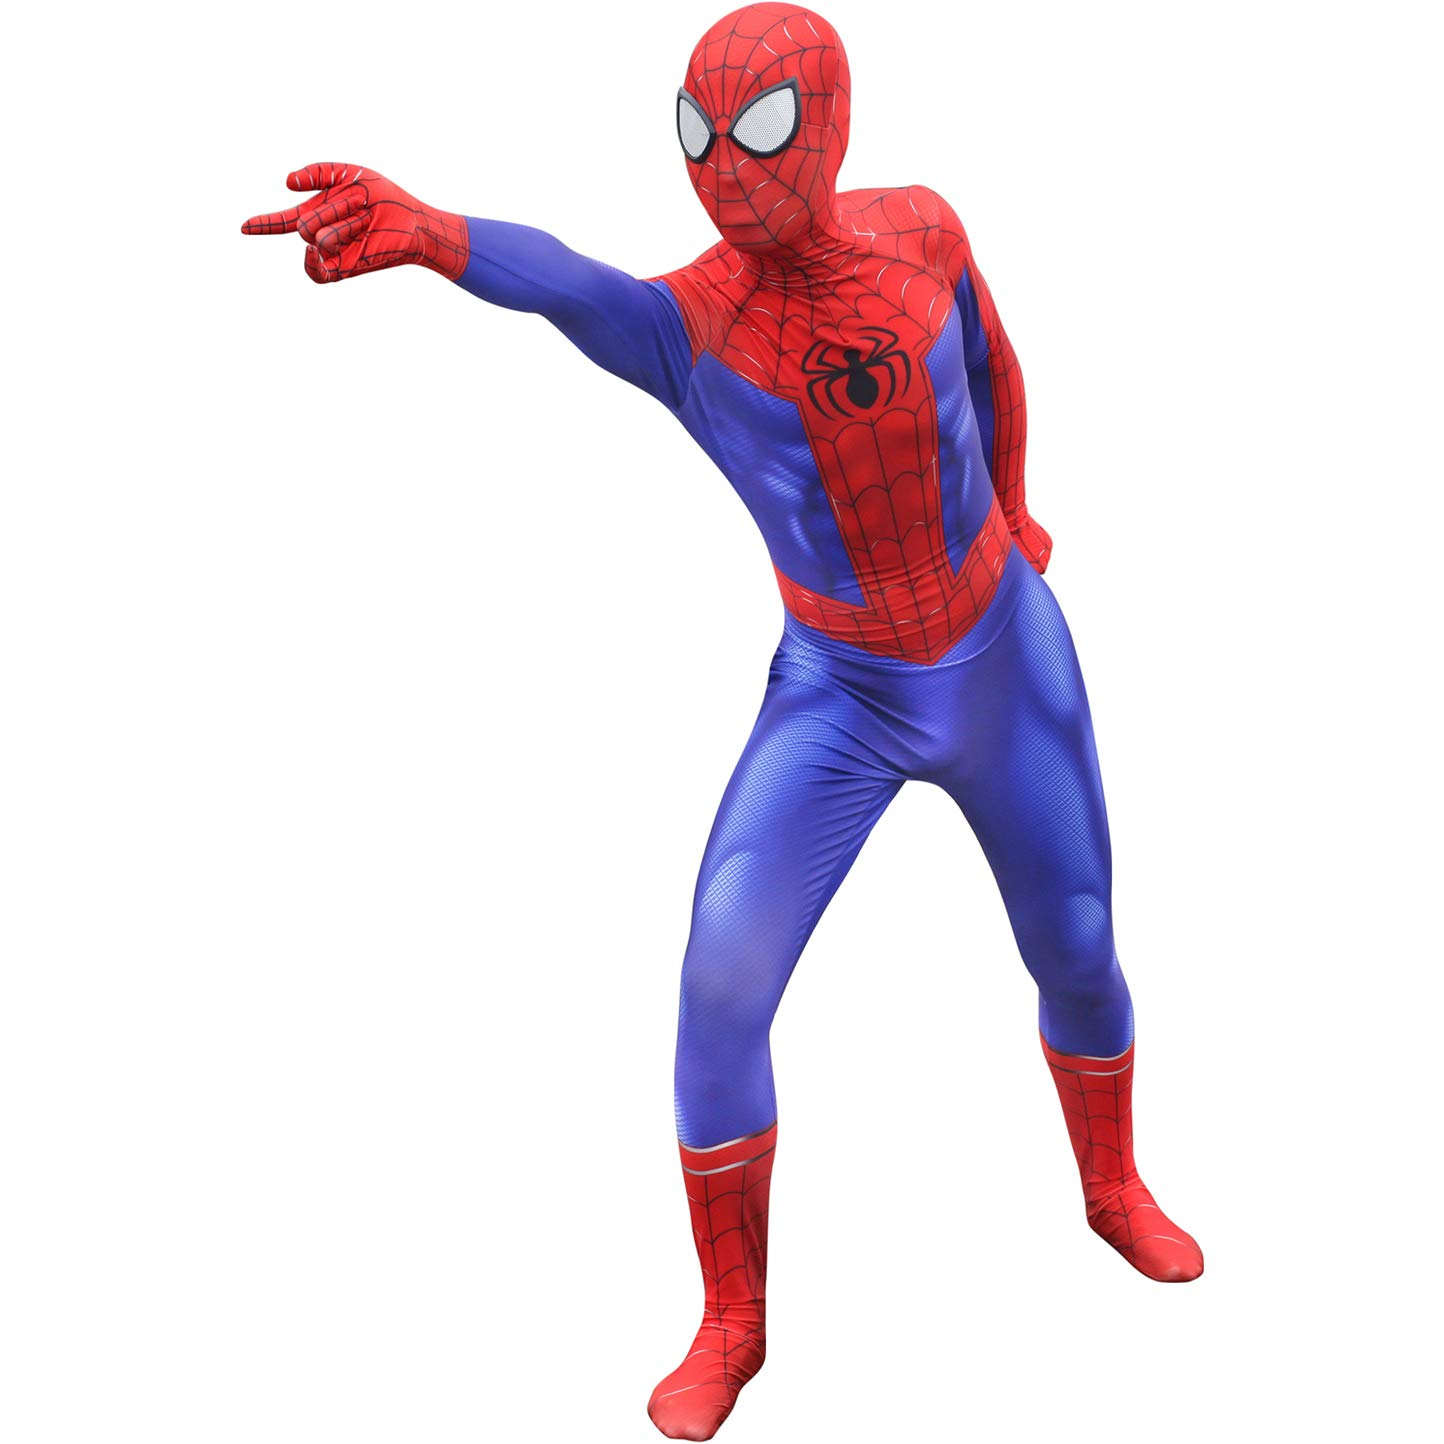 Spiderman Costume Spider-Man Jumpsuit Peter Parker Cosplay Outfit Halloween Prop